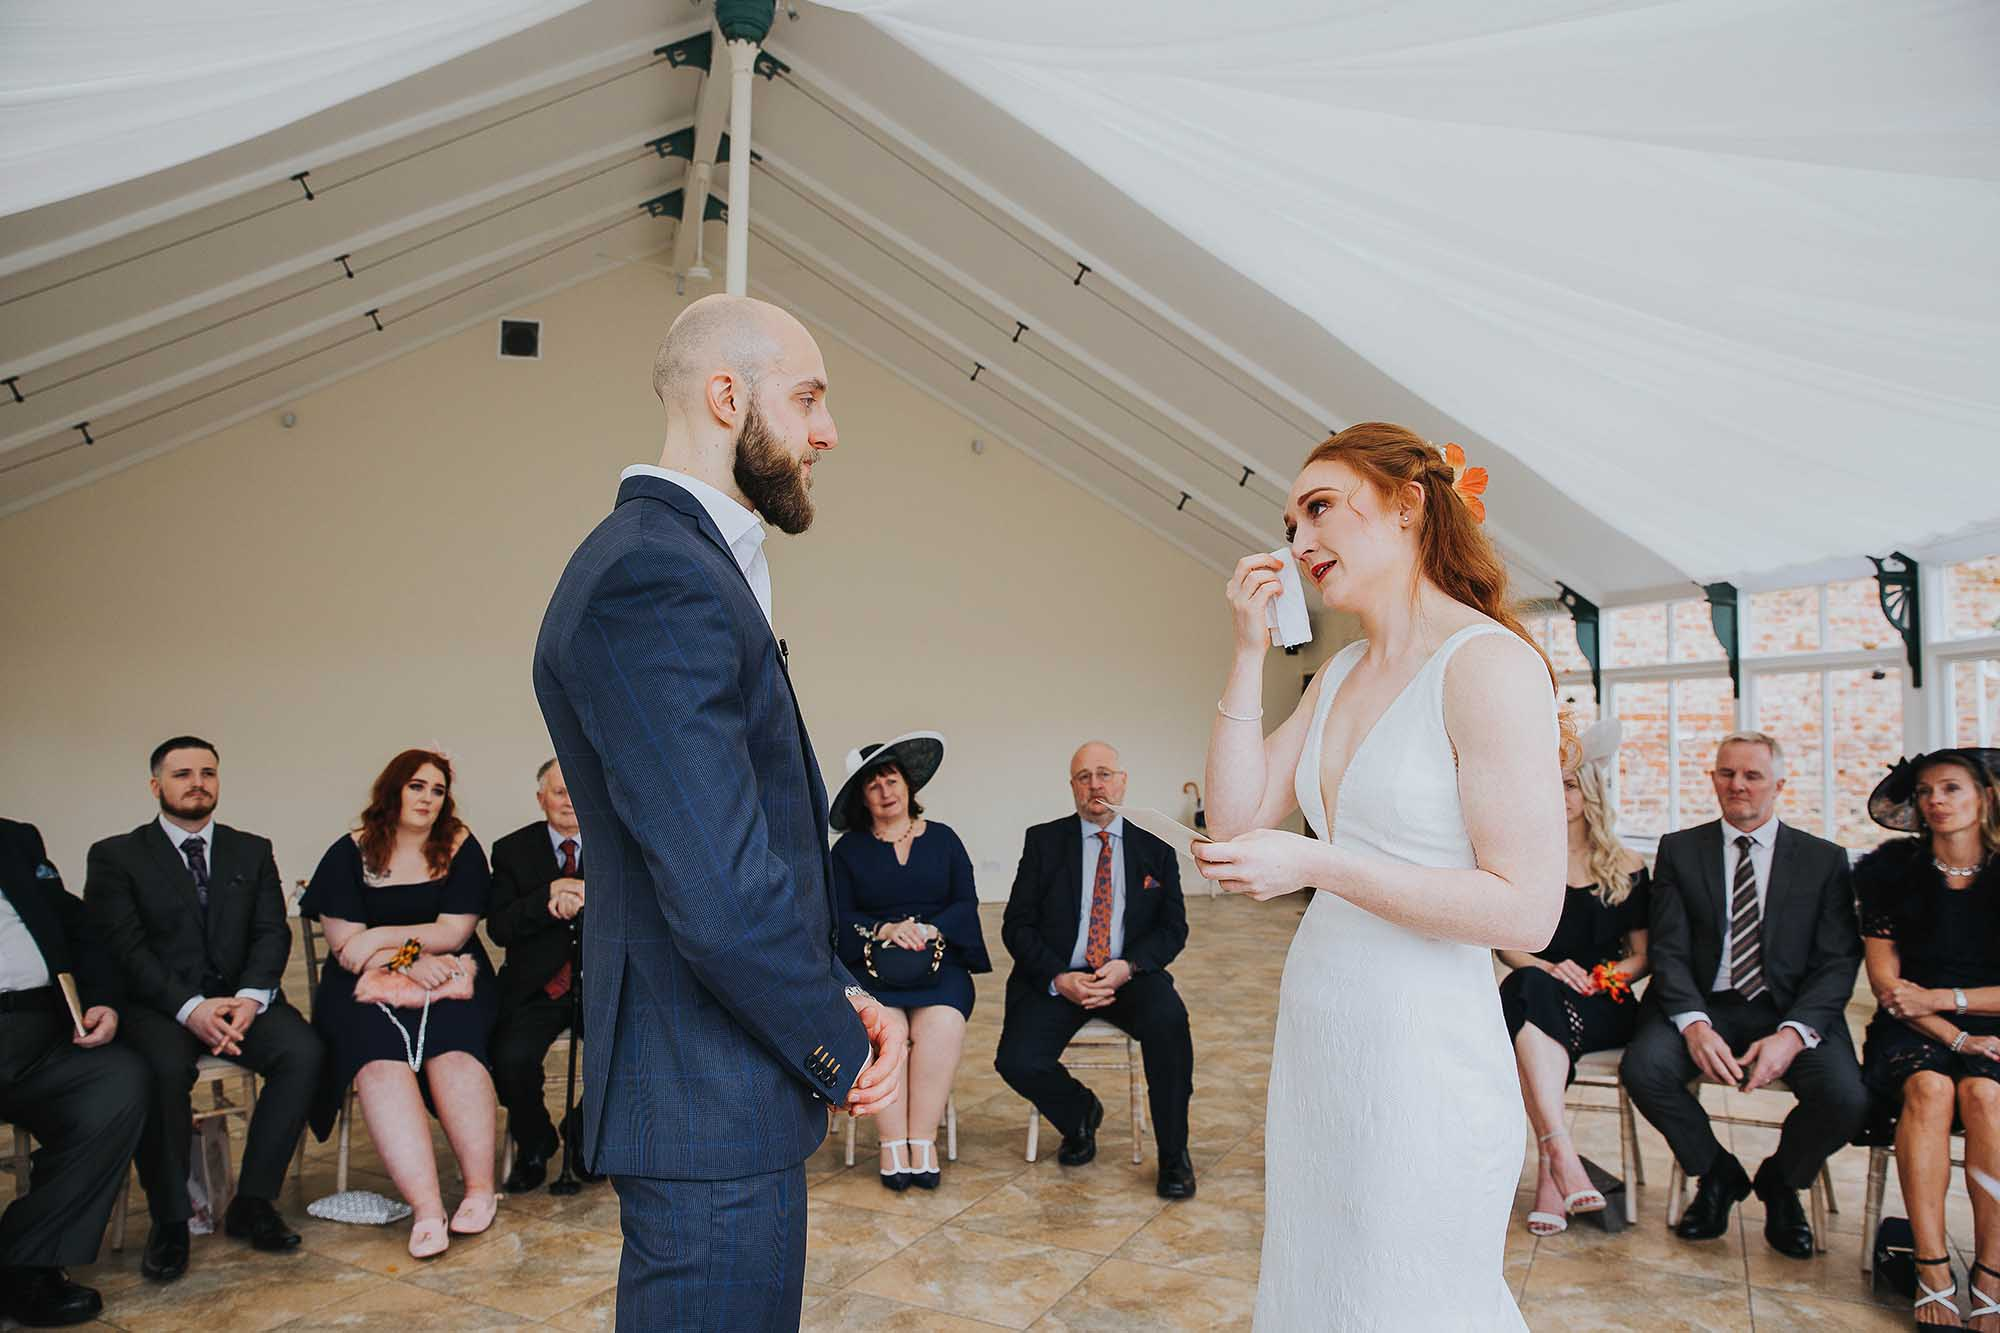 Combermere Abbey wedding ceremony in the glasshouse